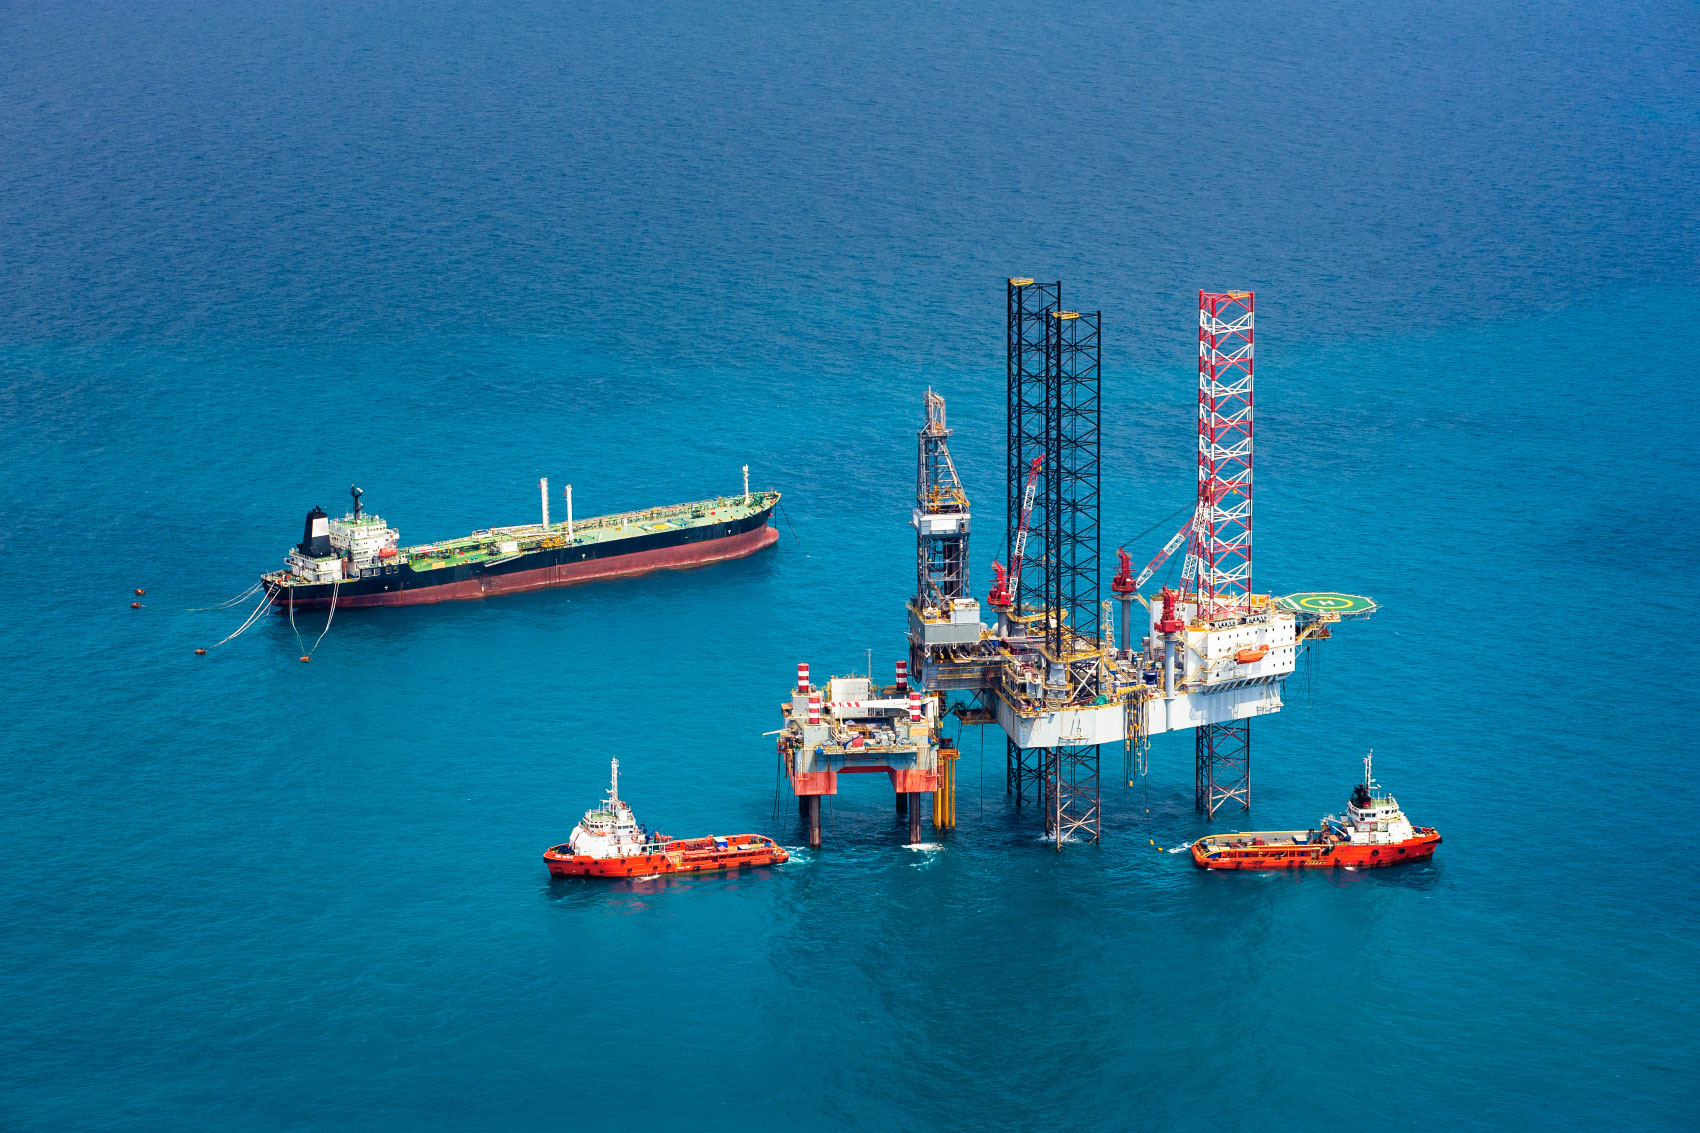 TPM Solutions Upstream with a full range of exploration and production experience